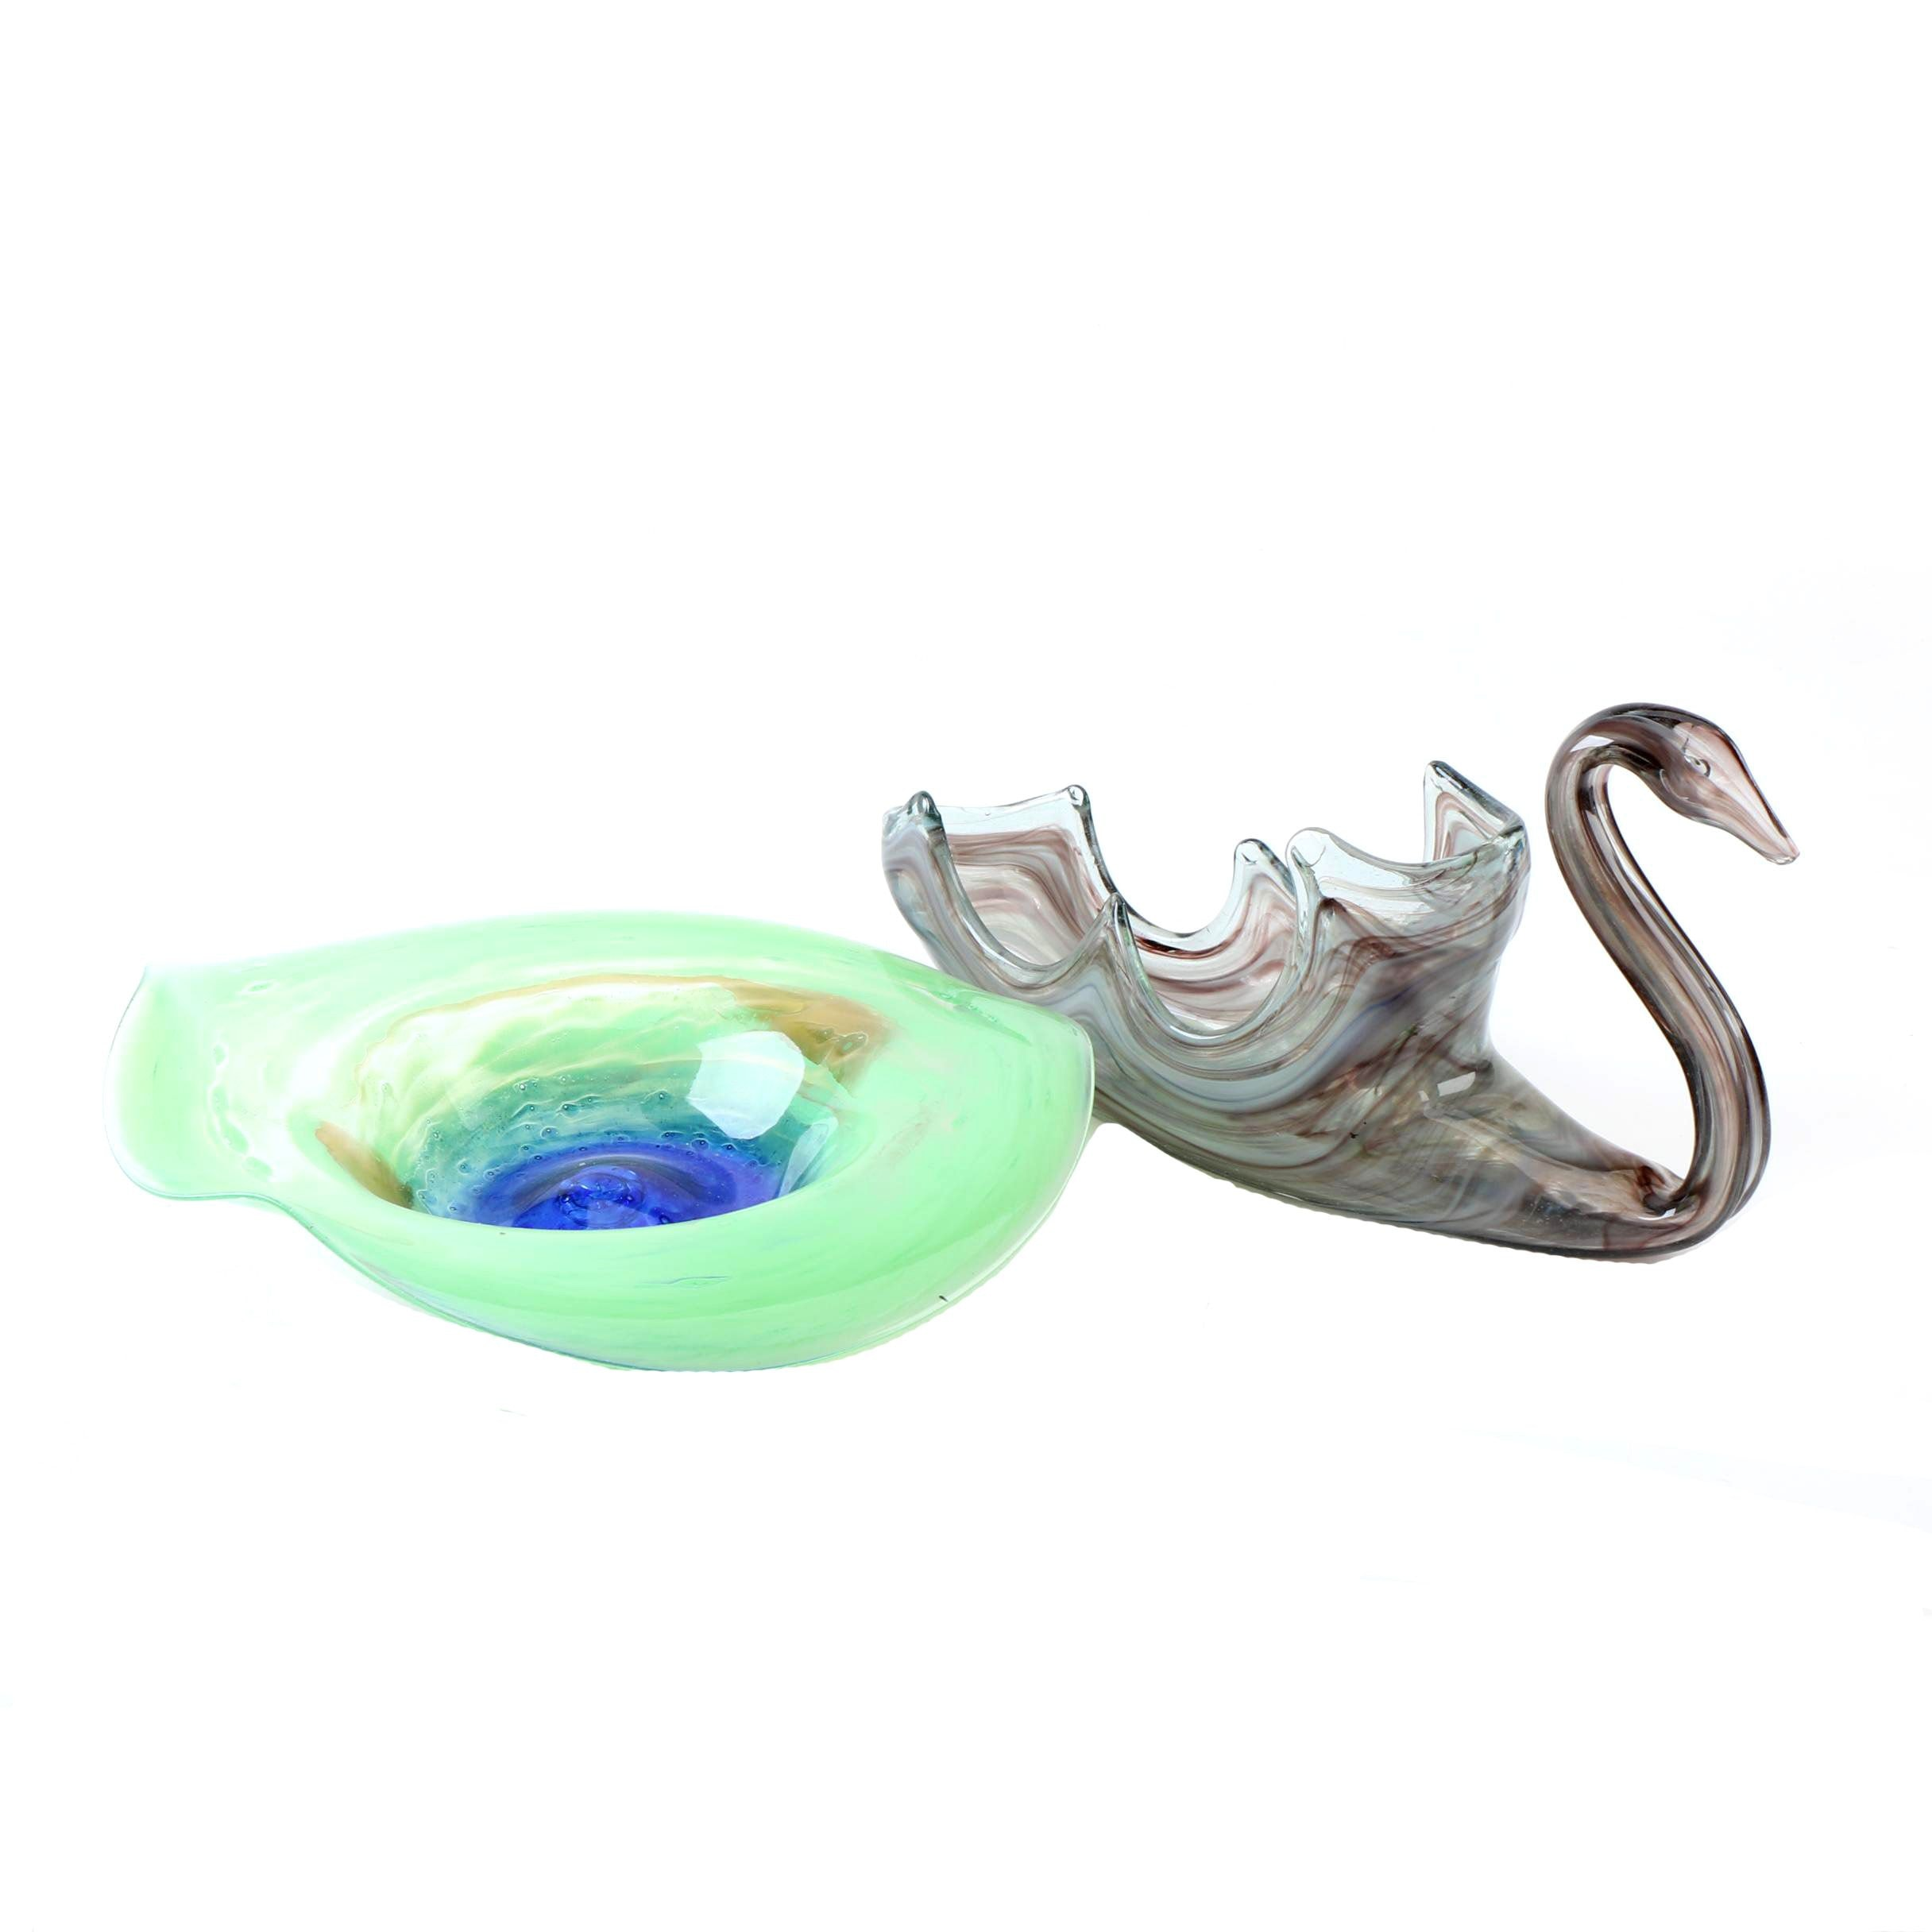 Swan Motif and Abstract Art Glass Bowls